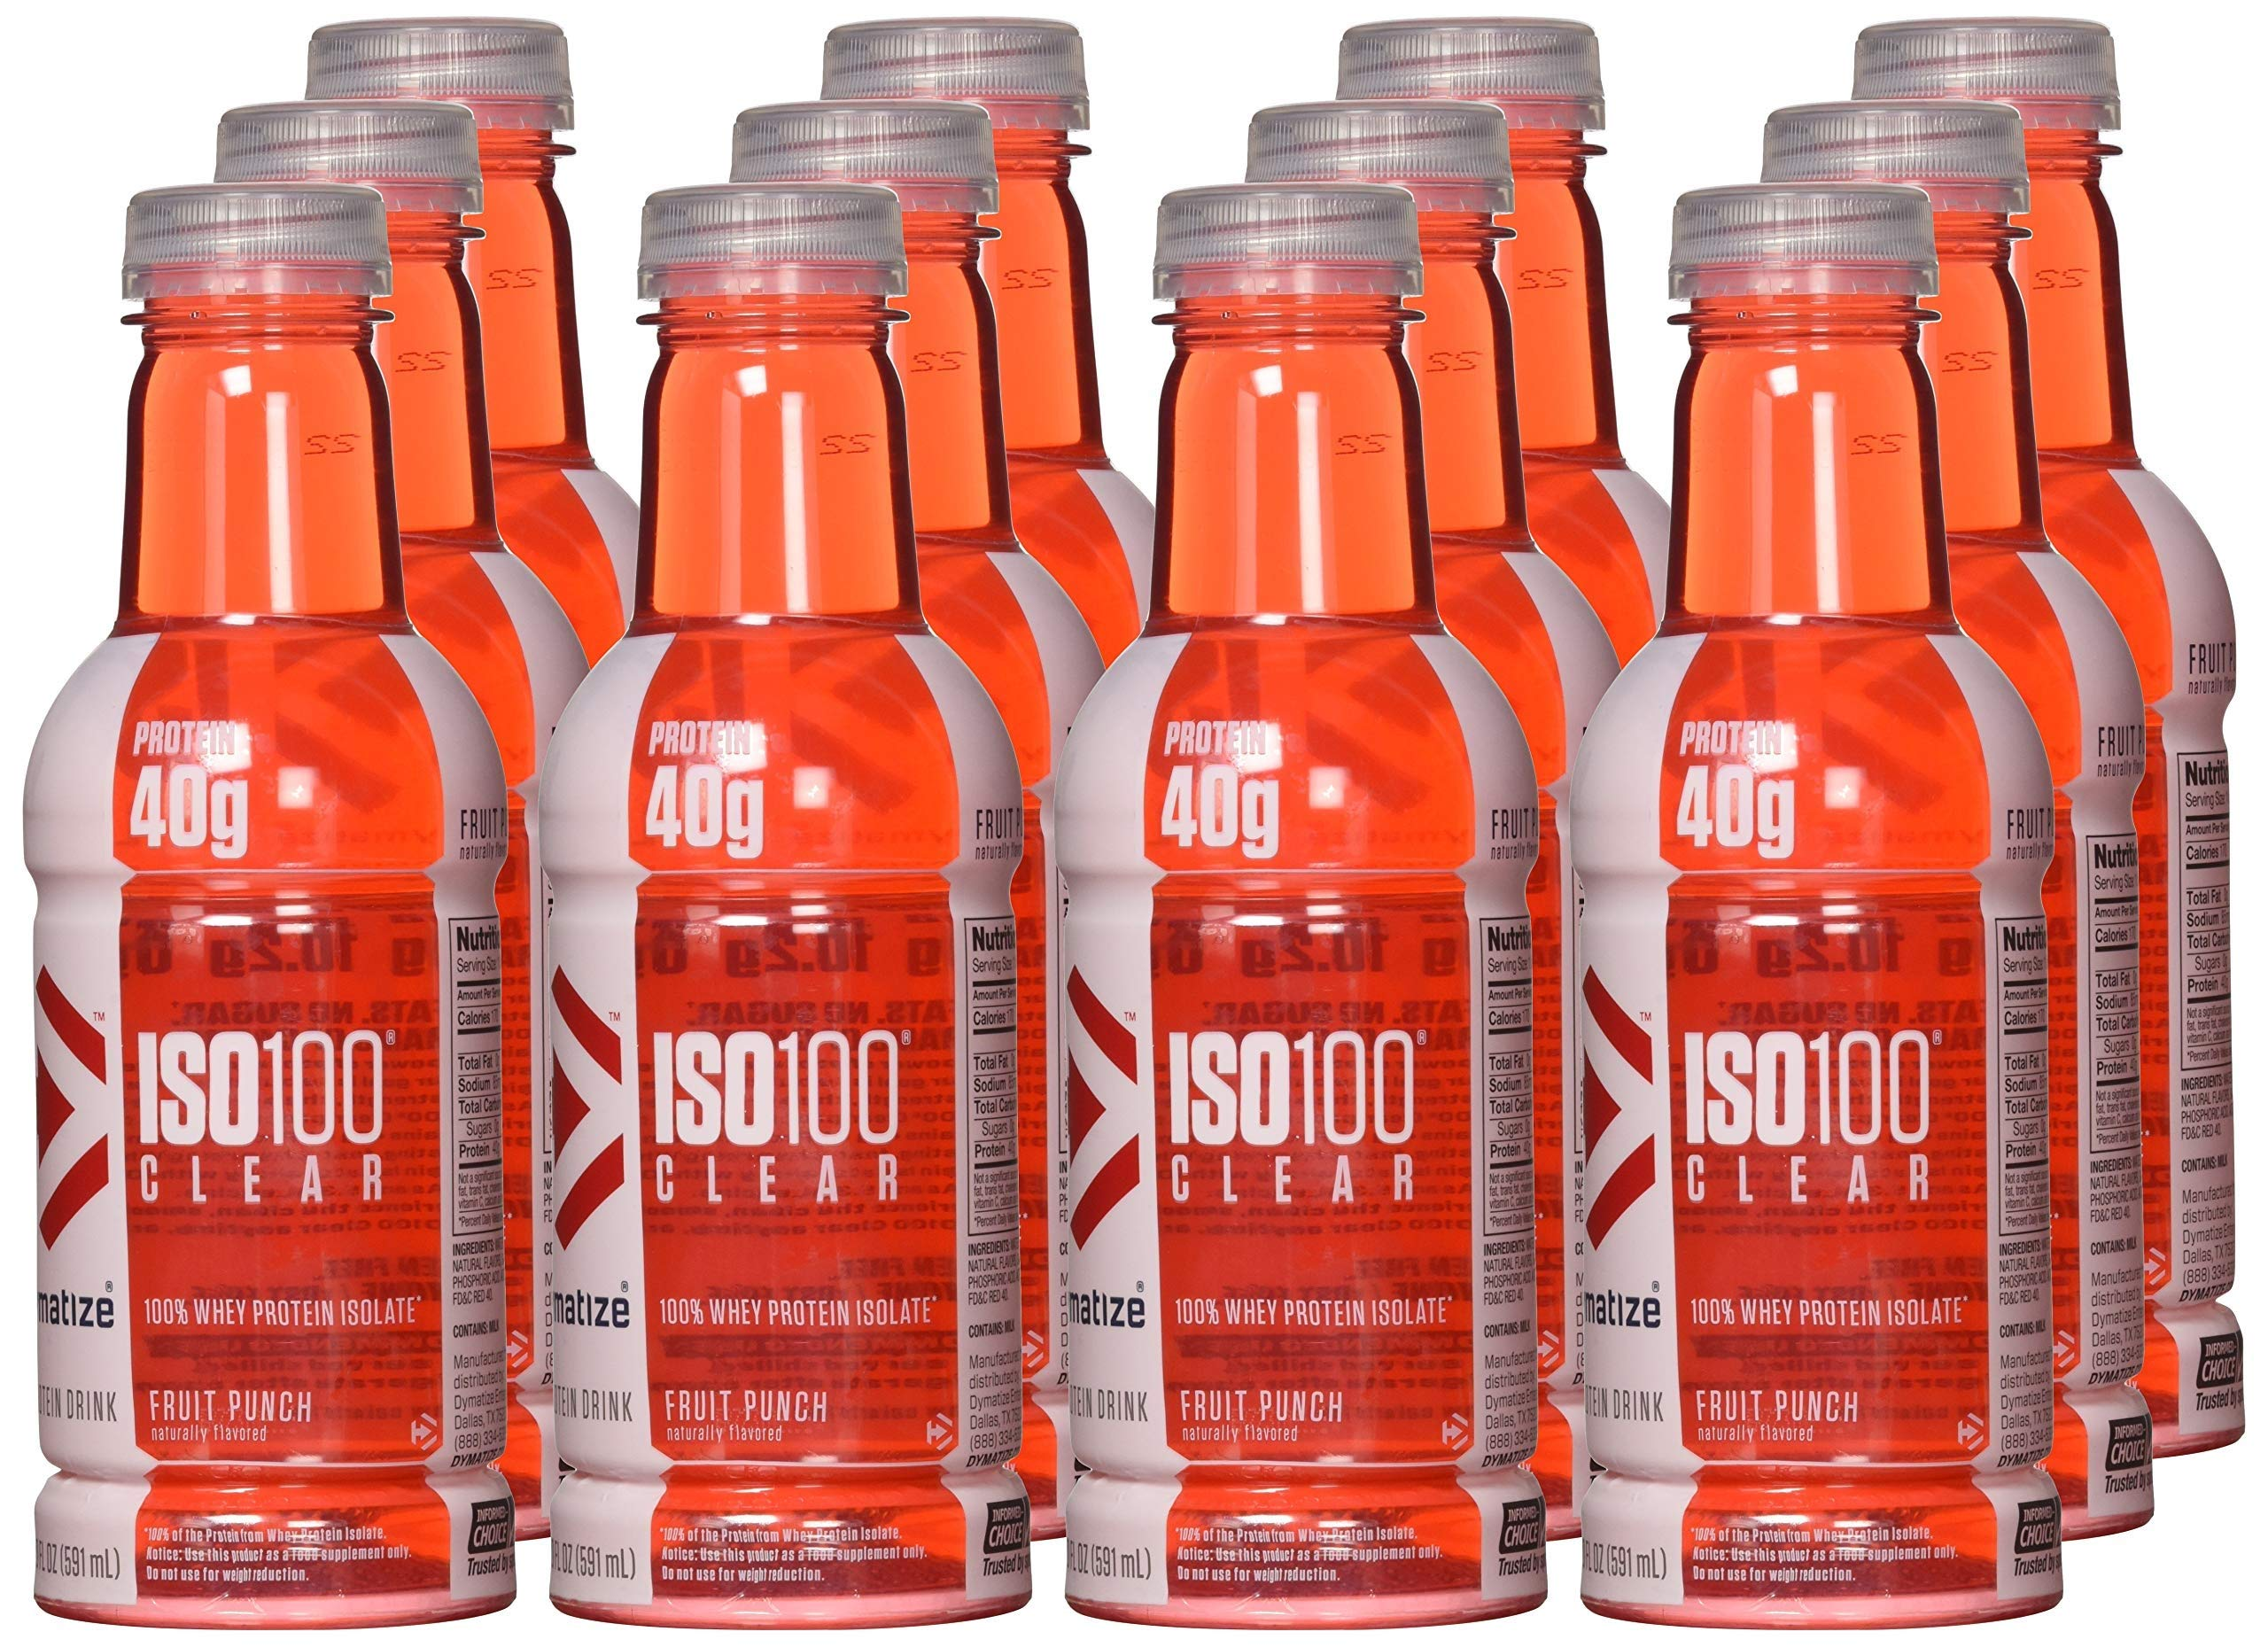 Dymatize ISO-Clear 100% Whey Protein Isolate, Fruit Punch, 20 Oz, 12 Count